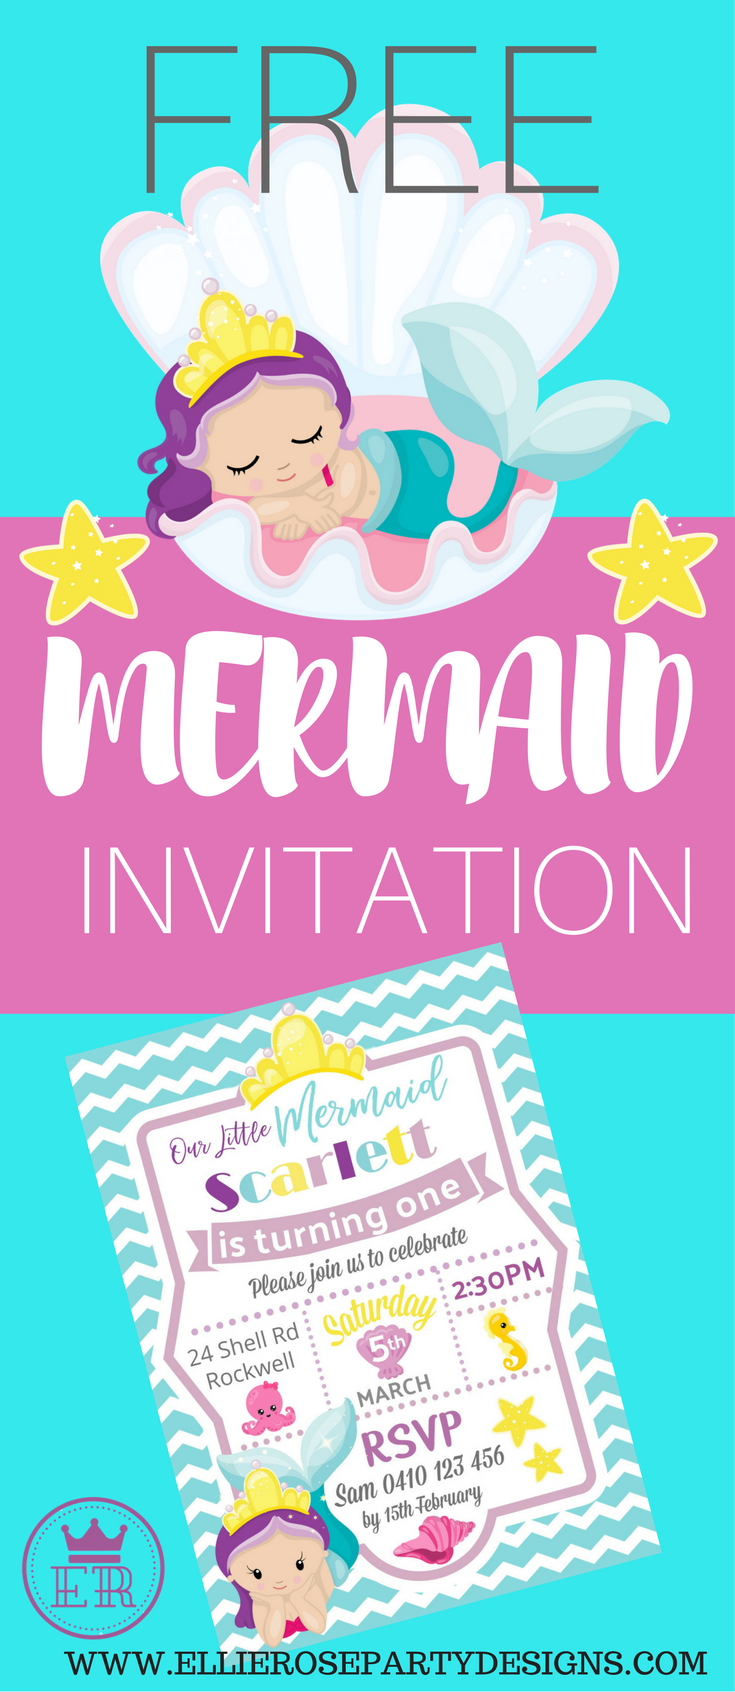 FREE MERMAID UNDER THE SEA INVITATION